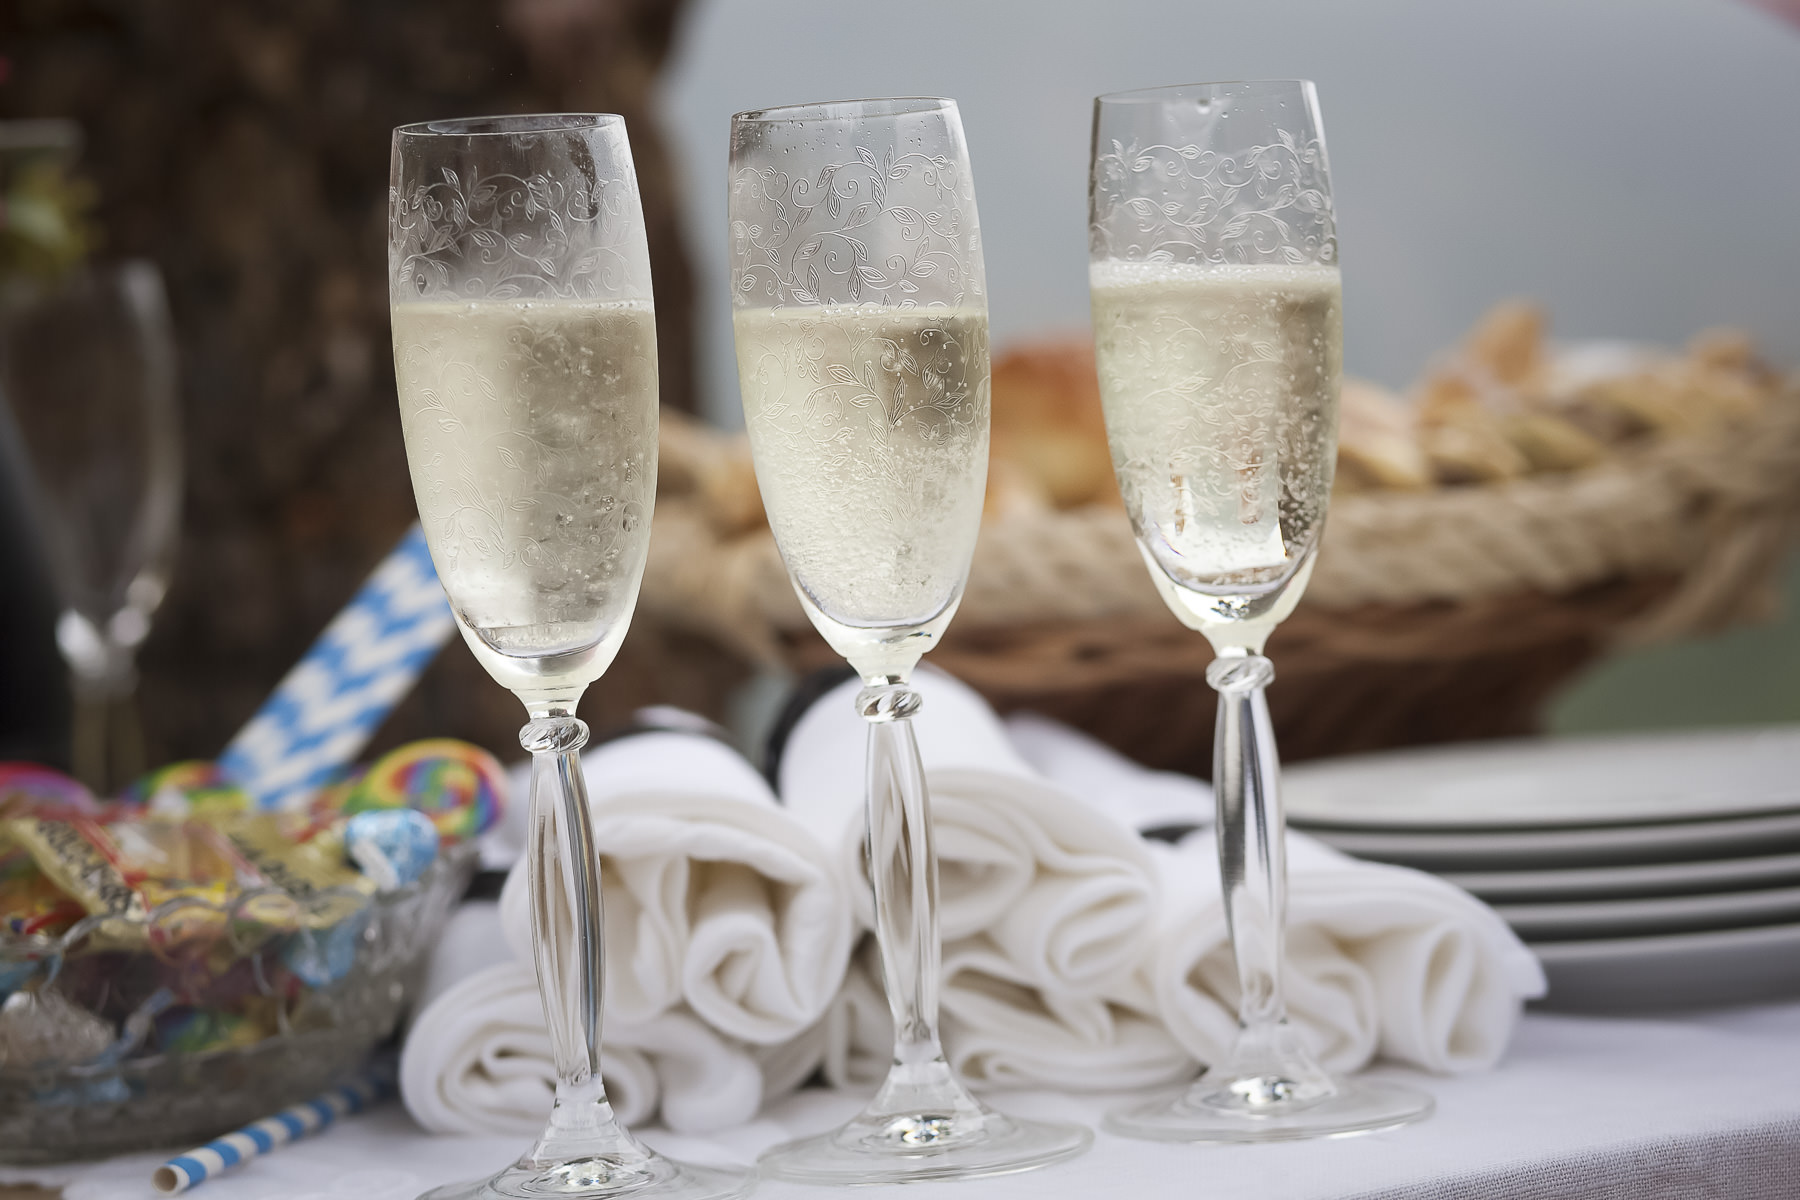 Champagne flutes with champagne and white napkis.